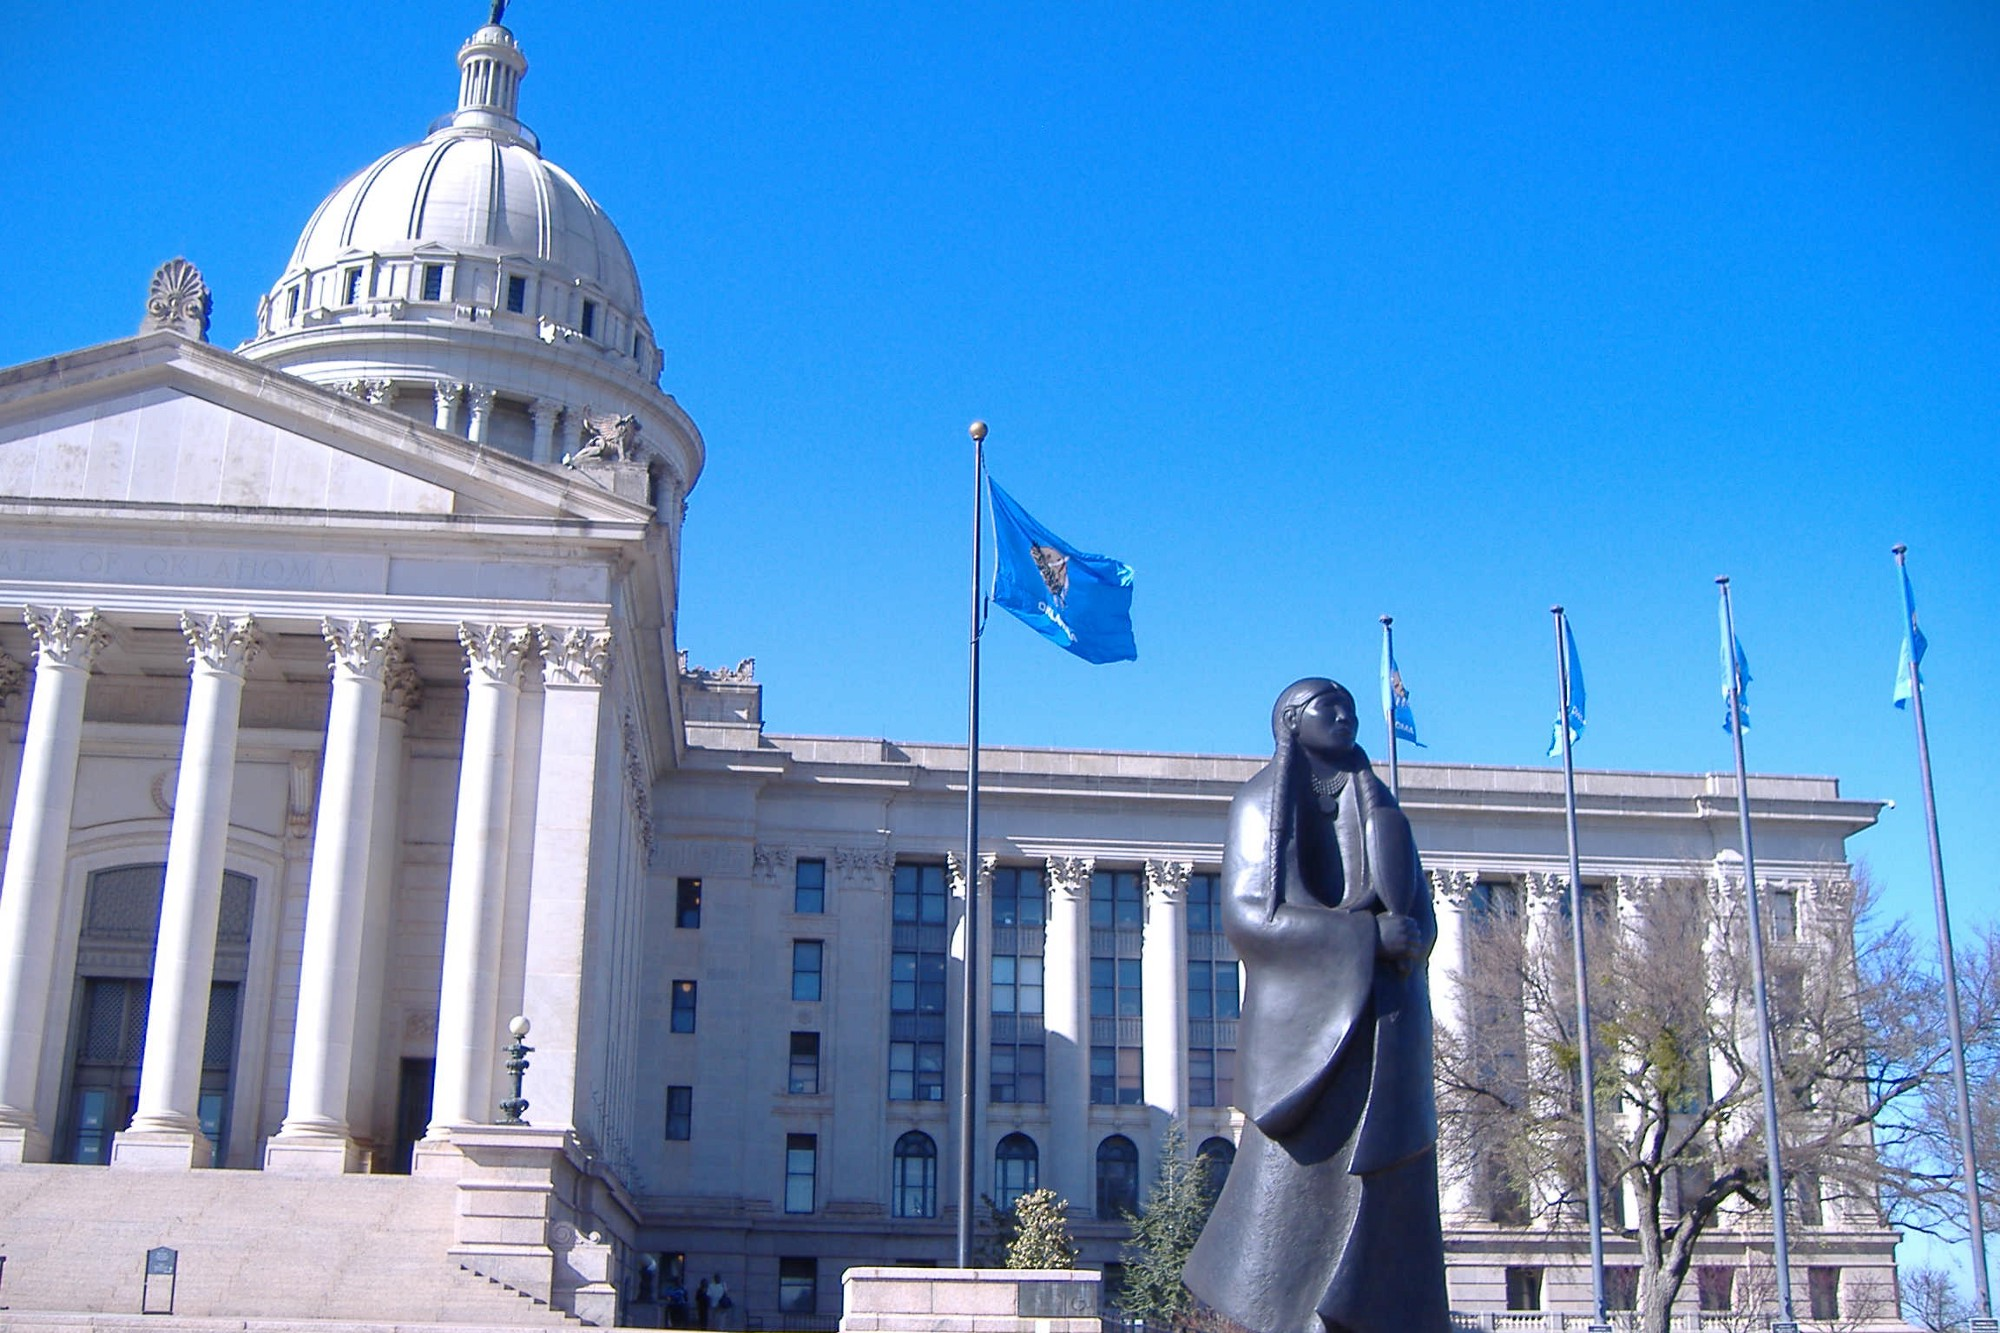 Bronze sculpture of a Native American woman in front of the neoclassical facade of the Oklahoma State Capitol building.